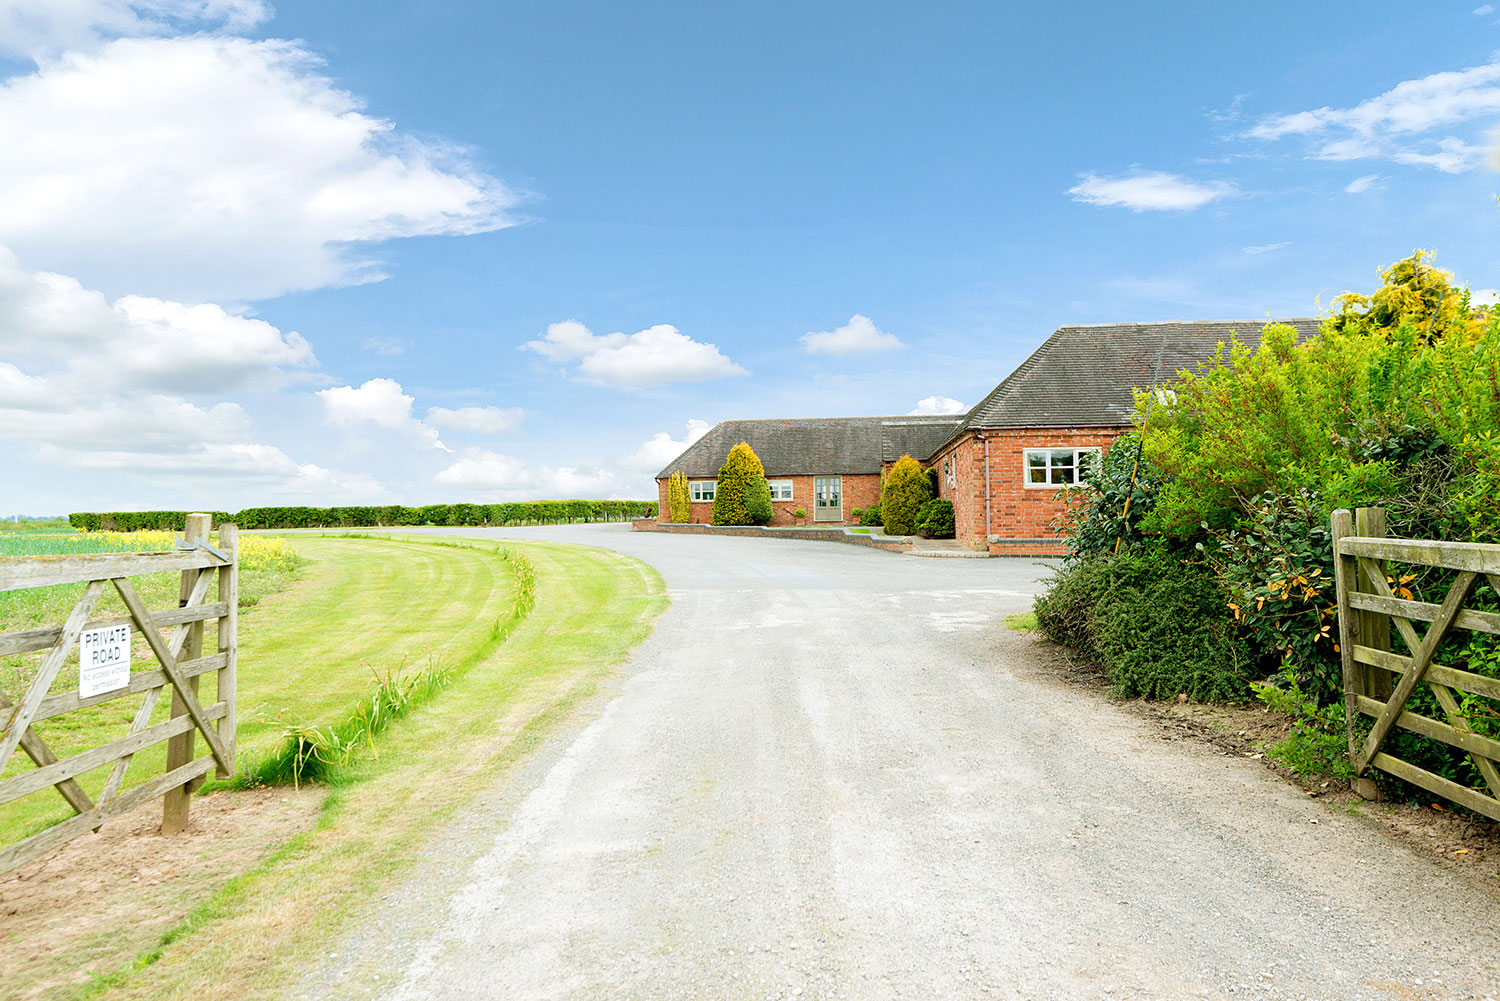 Luxury holiday cottages in the heart of England | Upper Rectory Farm Cottages